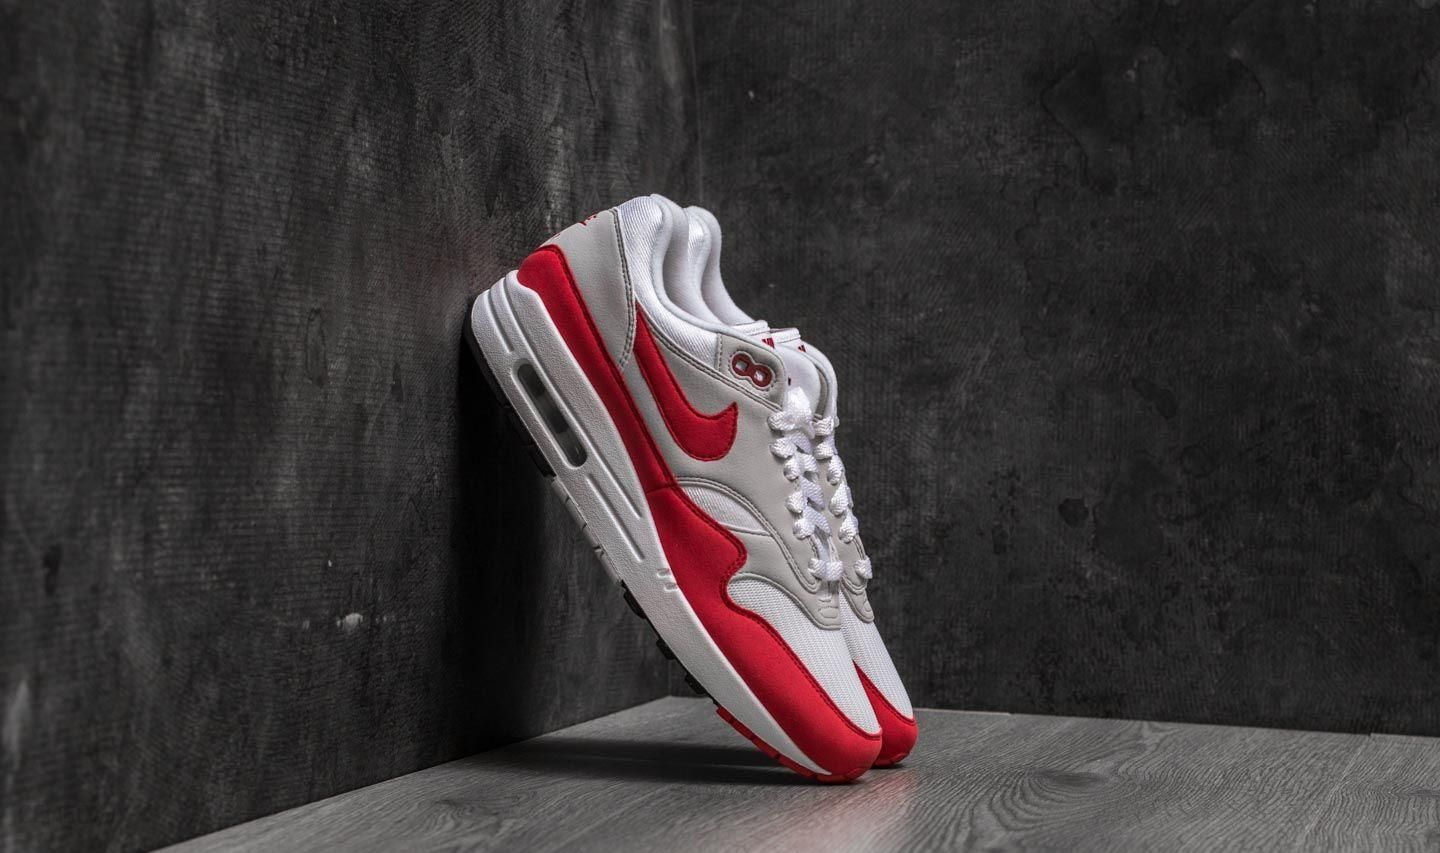 Nike Air Max 1 OG Anniversary White University Red Ceneo.pl